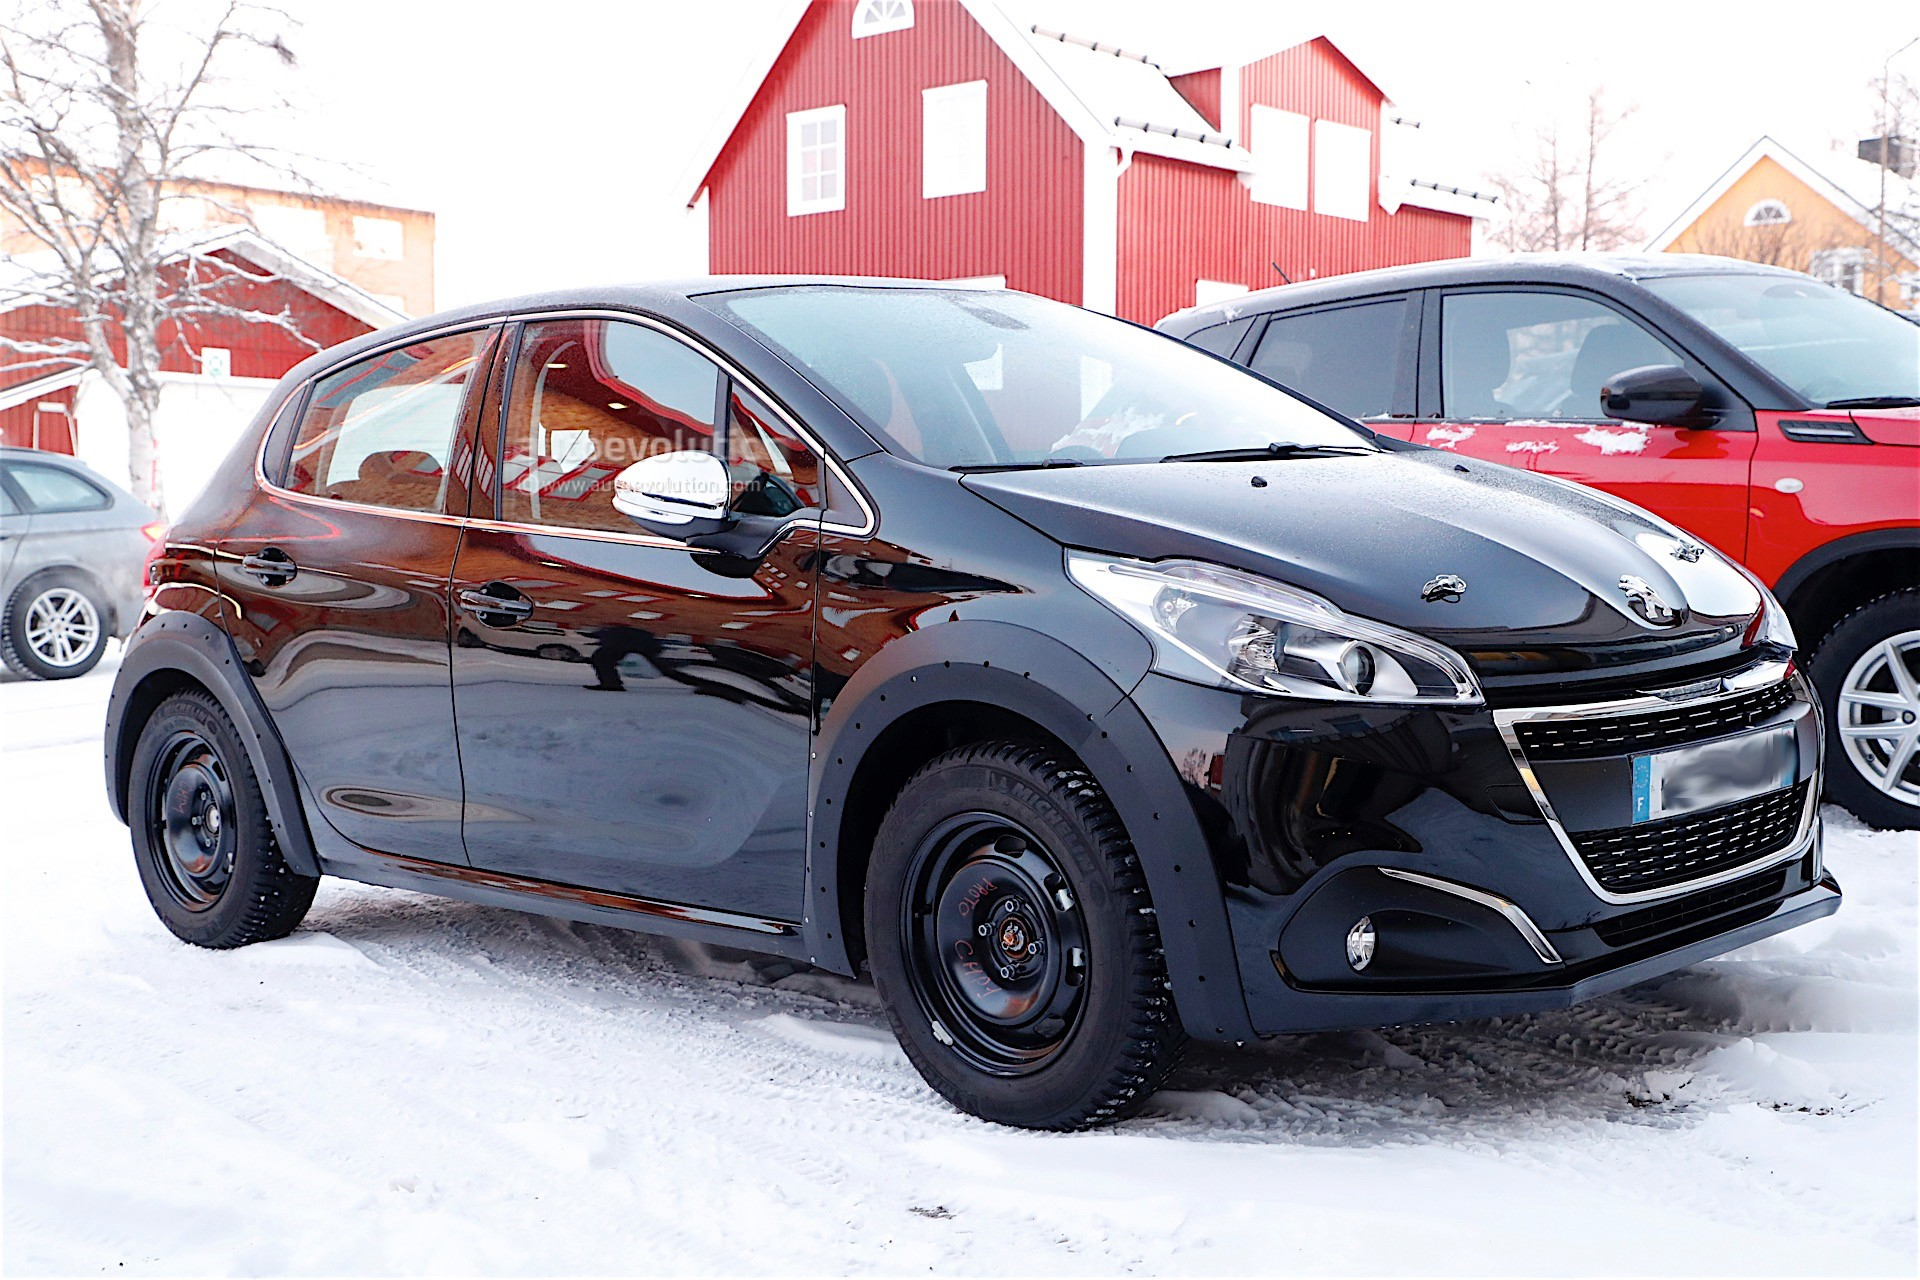 2018 peugeot 208 mule spotted in sweden autoevolution. Black Bedroom Furniture Sets. Home Design Ideas